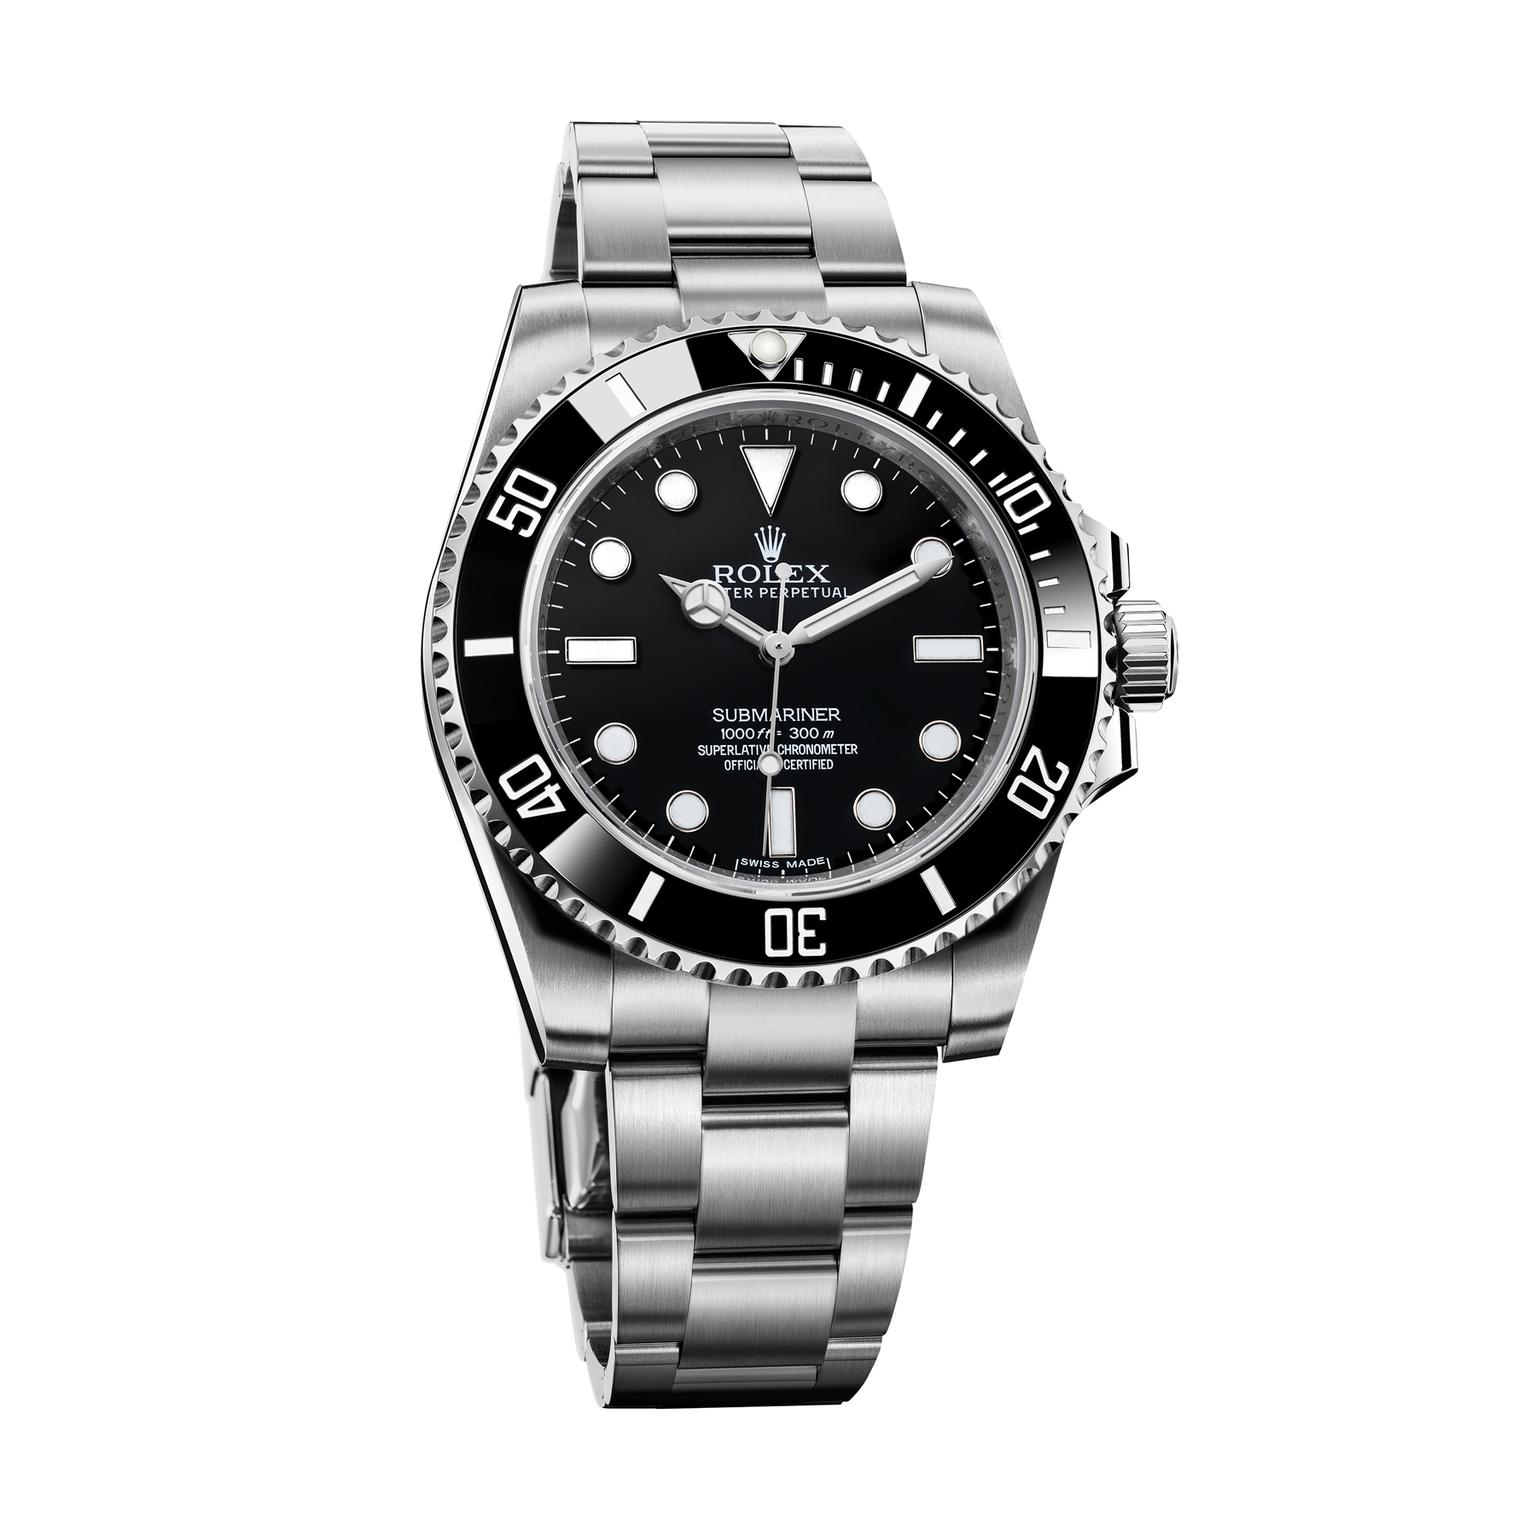 Steel Rolex Oyster Perpetual Submariner 40mm Steel Watch